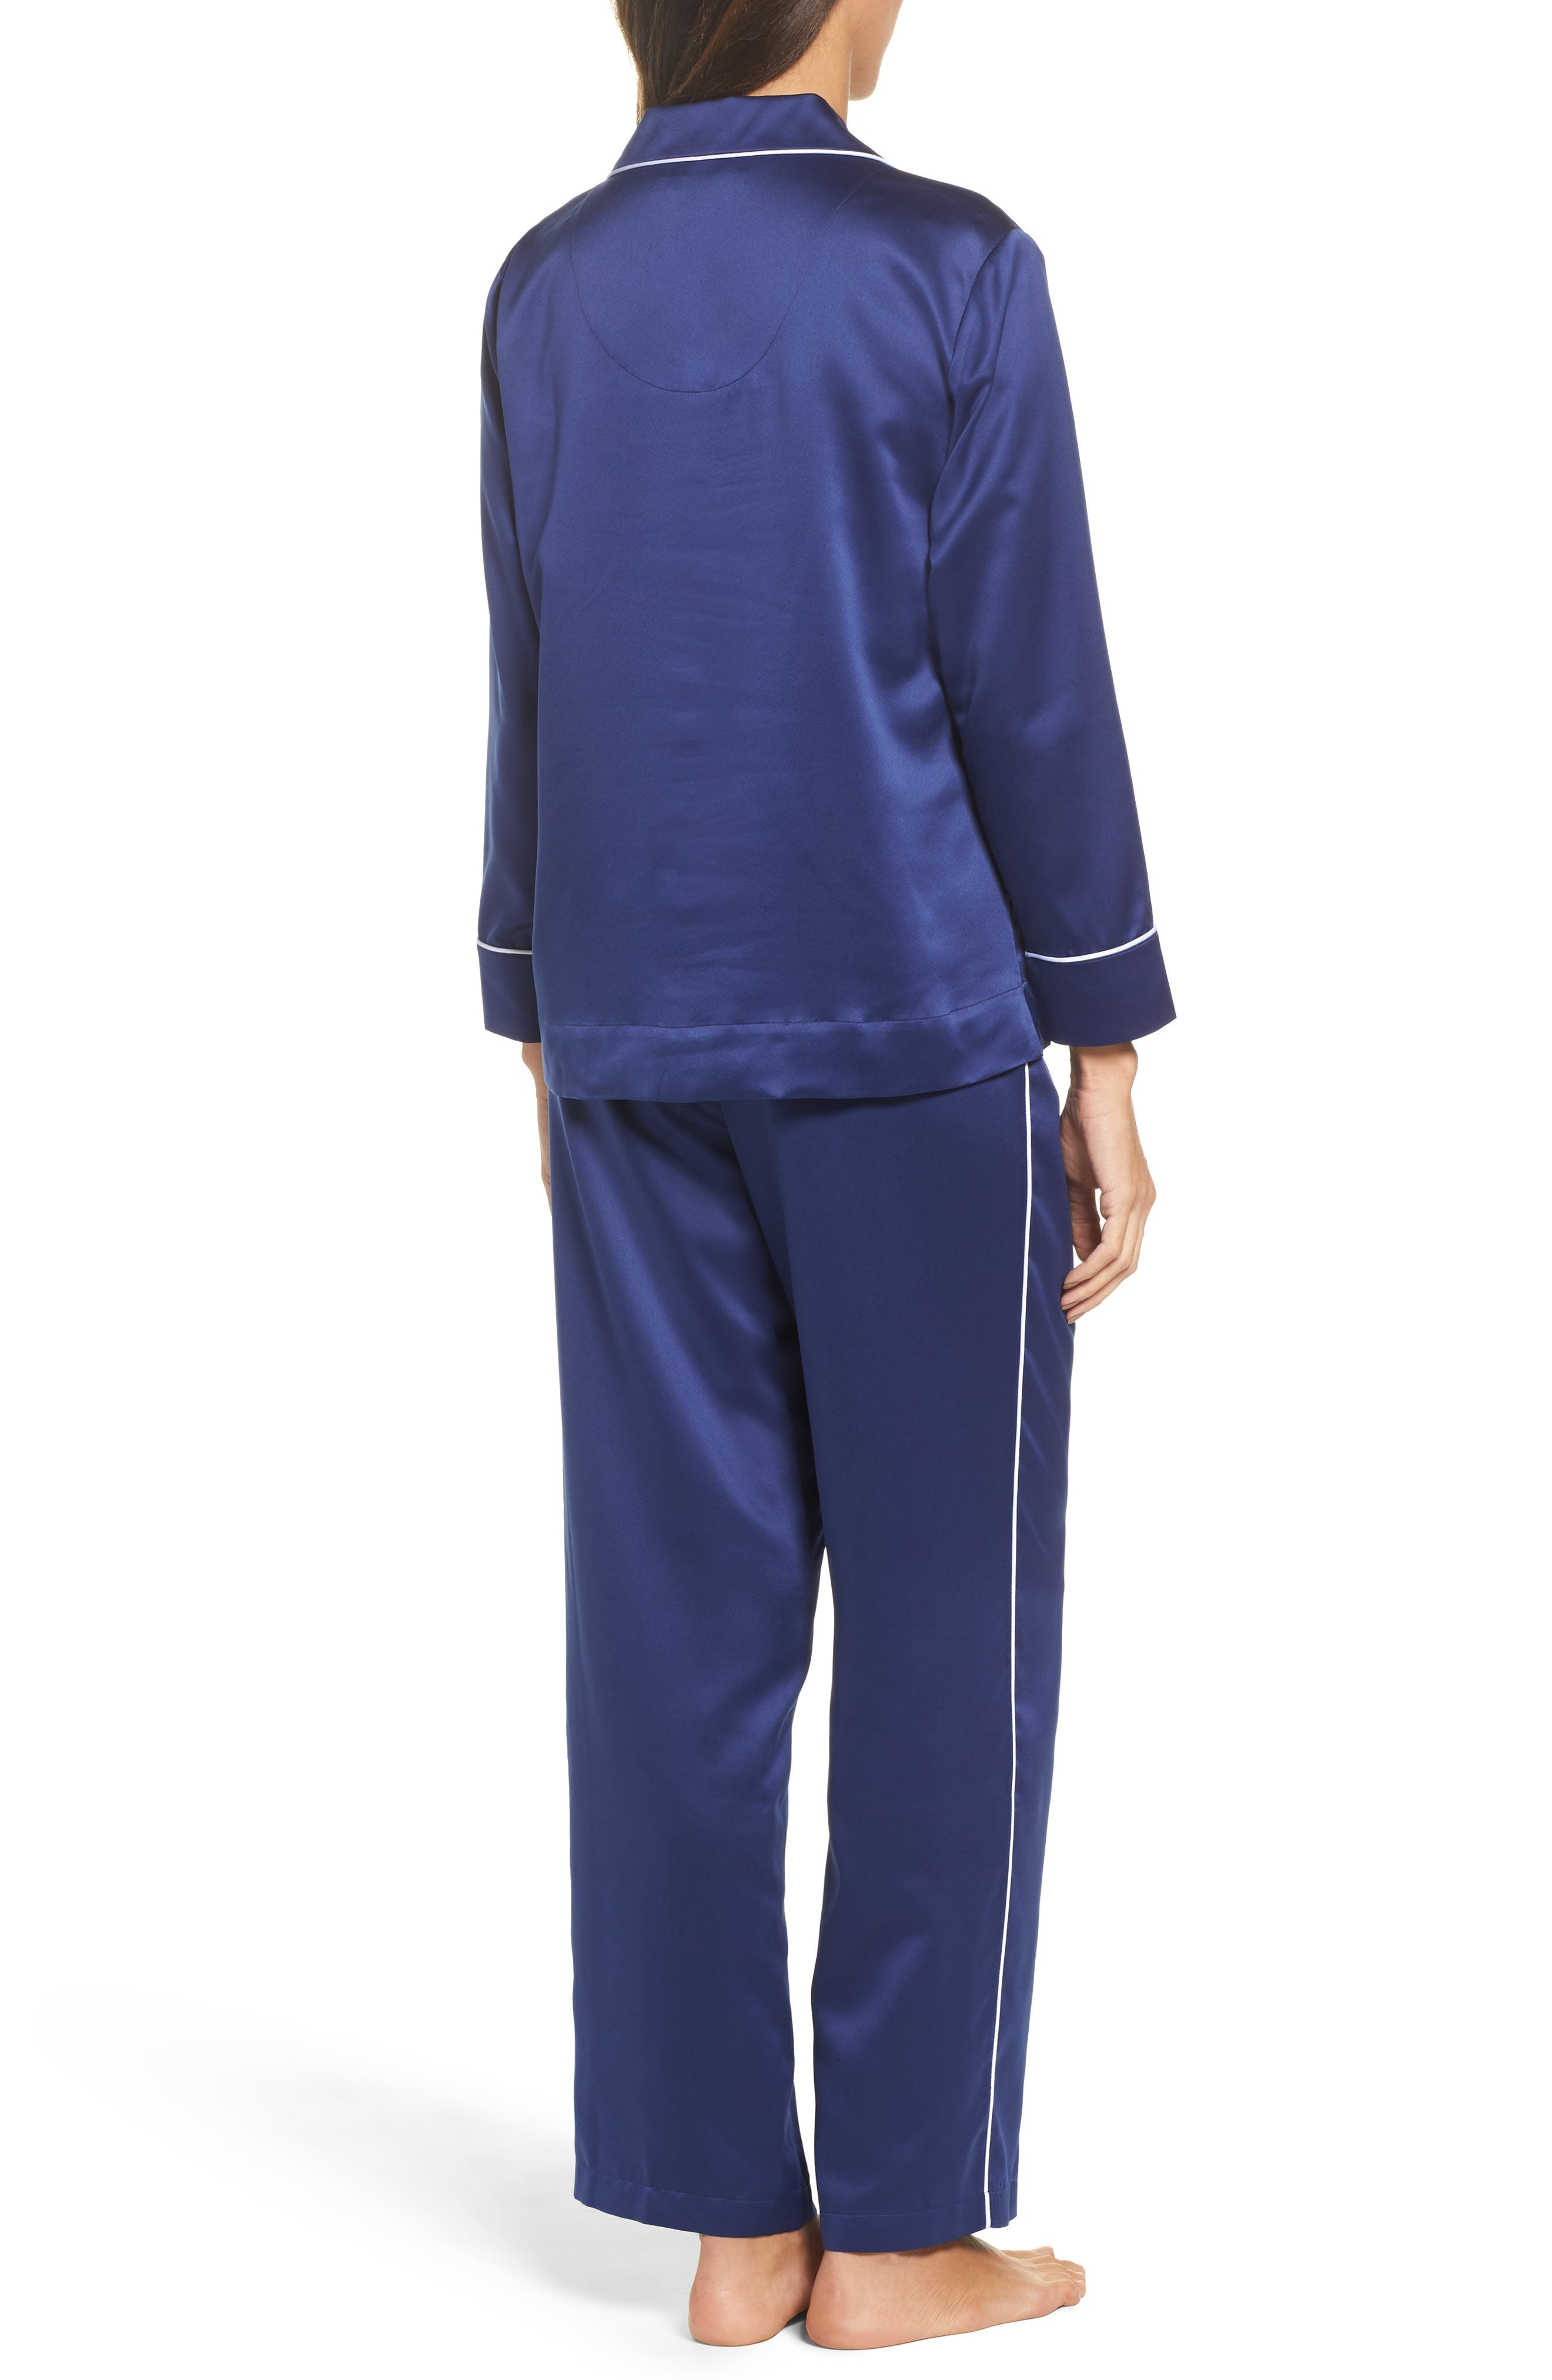 Satin Pajamas,                             Alternate thumbnail 2, color,                             410